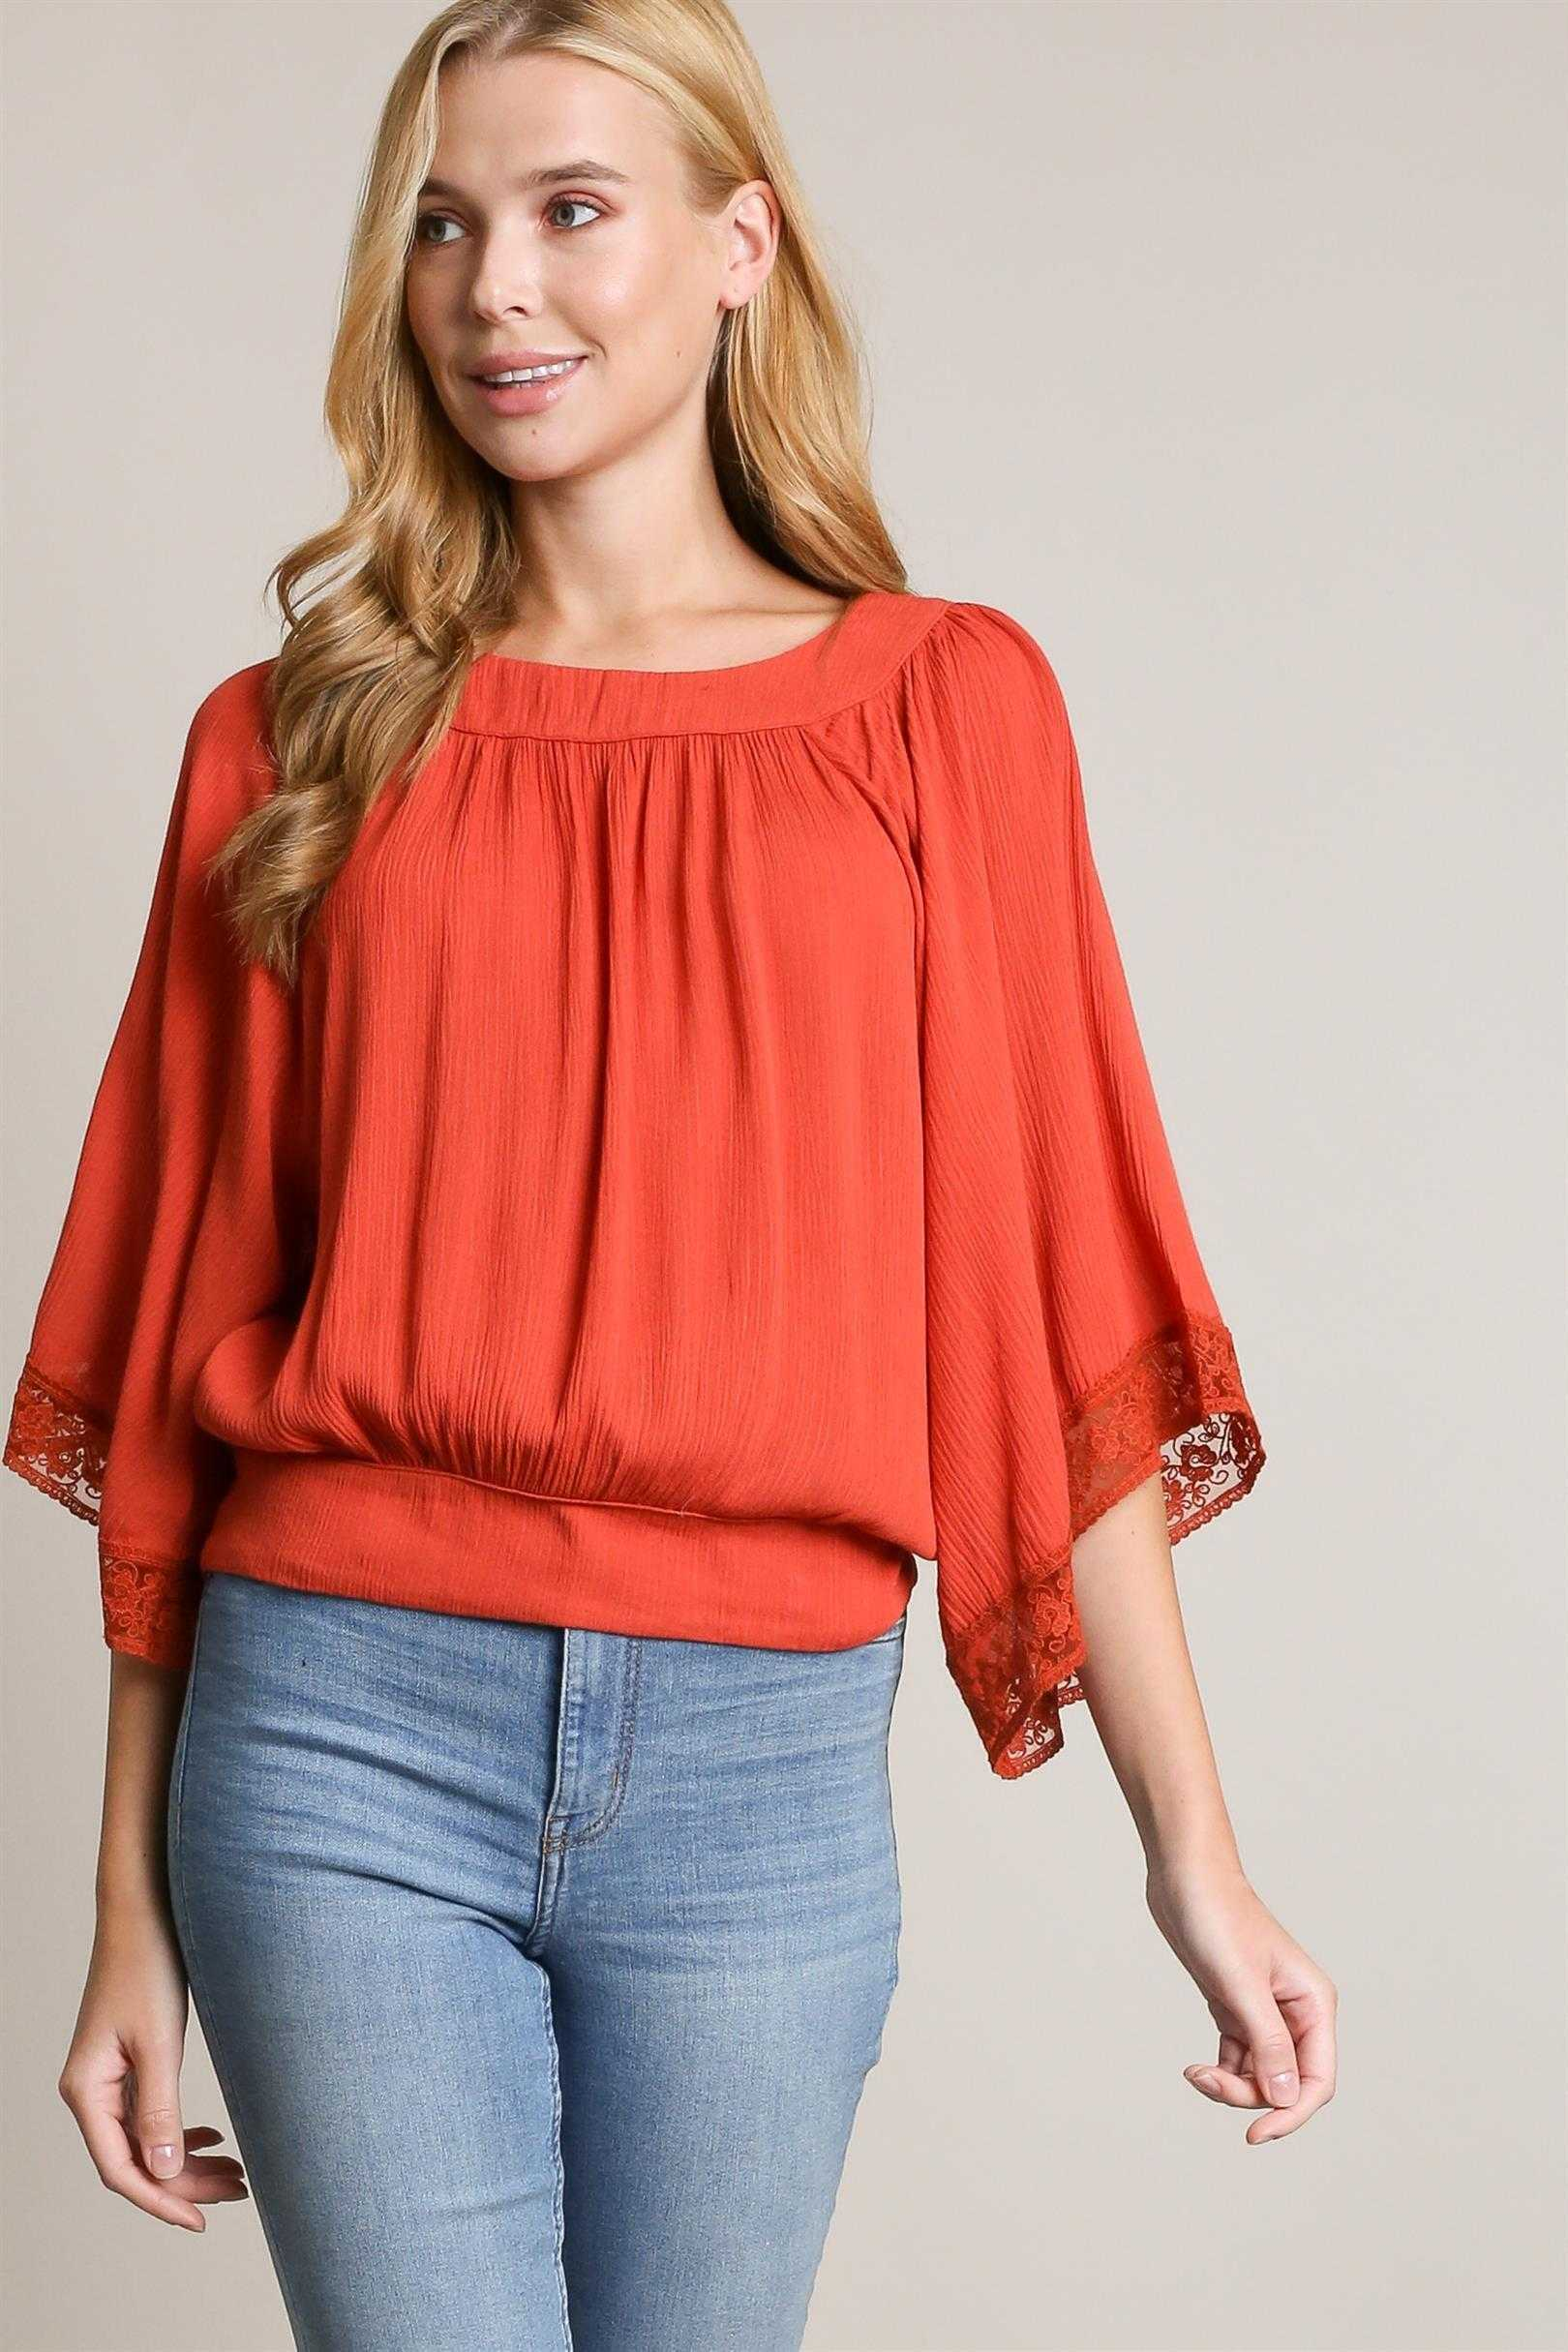 SOLID LACE TRIM OPEN BACK ROUND NECK TOP